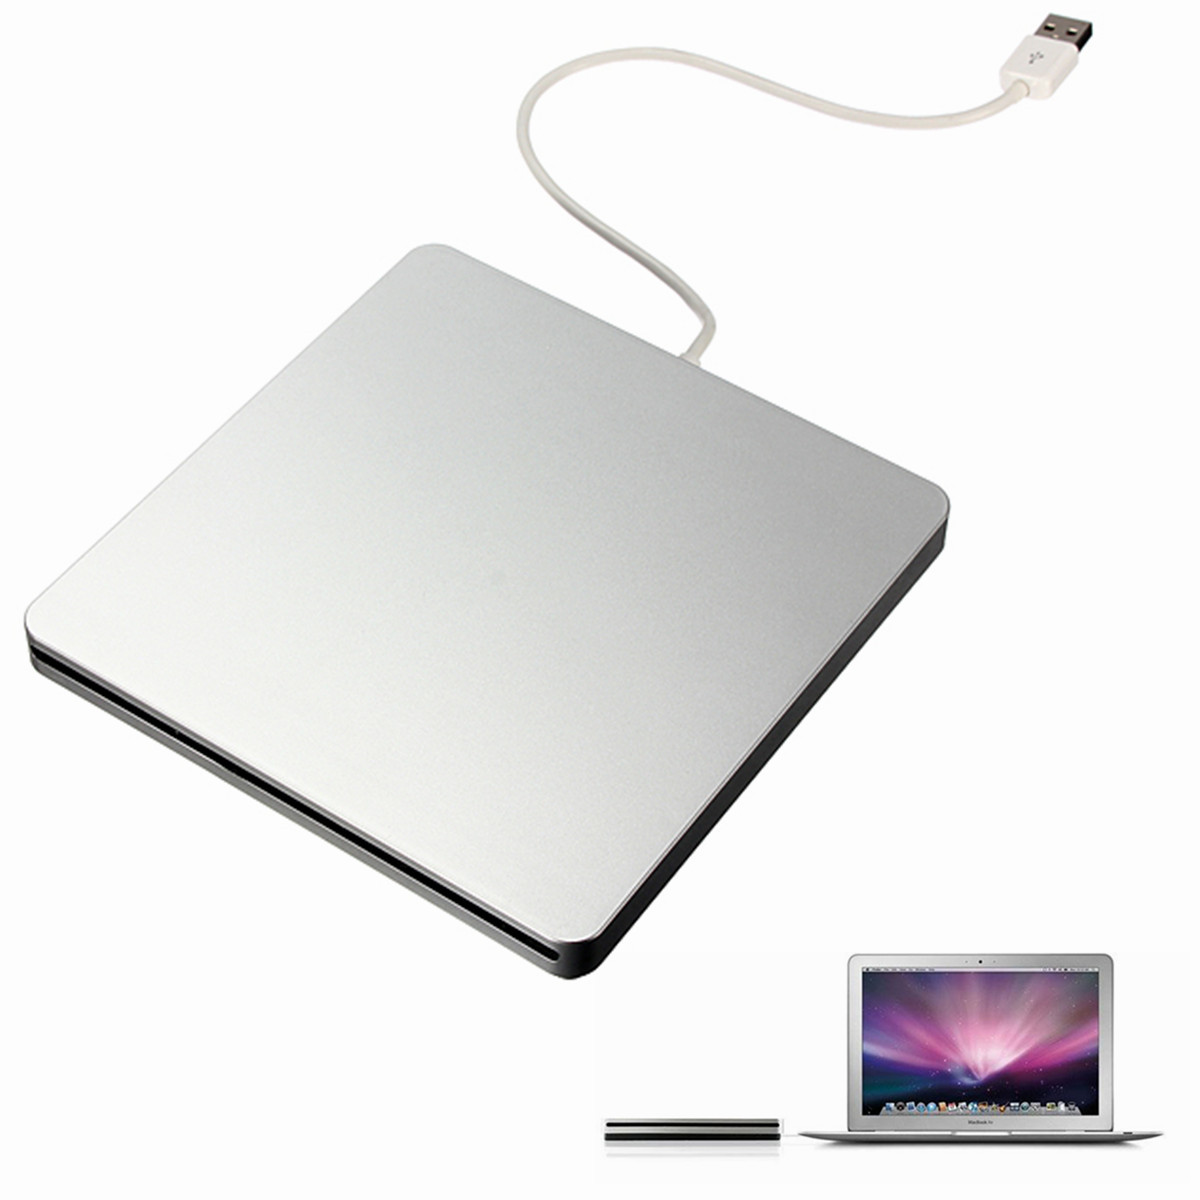 Bestrunner Portable USB2.0 External Slim DVD-RW/CD-RW Burner Recorder Optical Drive CD DVD ROM Combo Writer support windows10 victsing slim usb 2 0 drive cd dvd rw burner writer external optical drive with usb cable for apple macbook desktops laptops